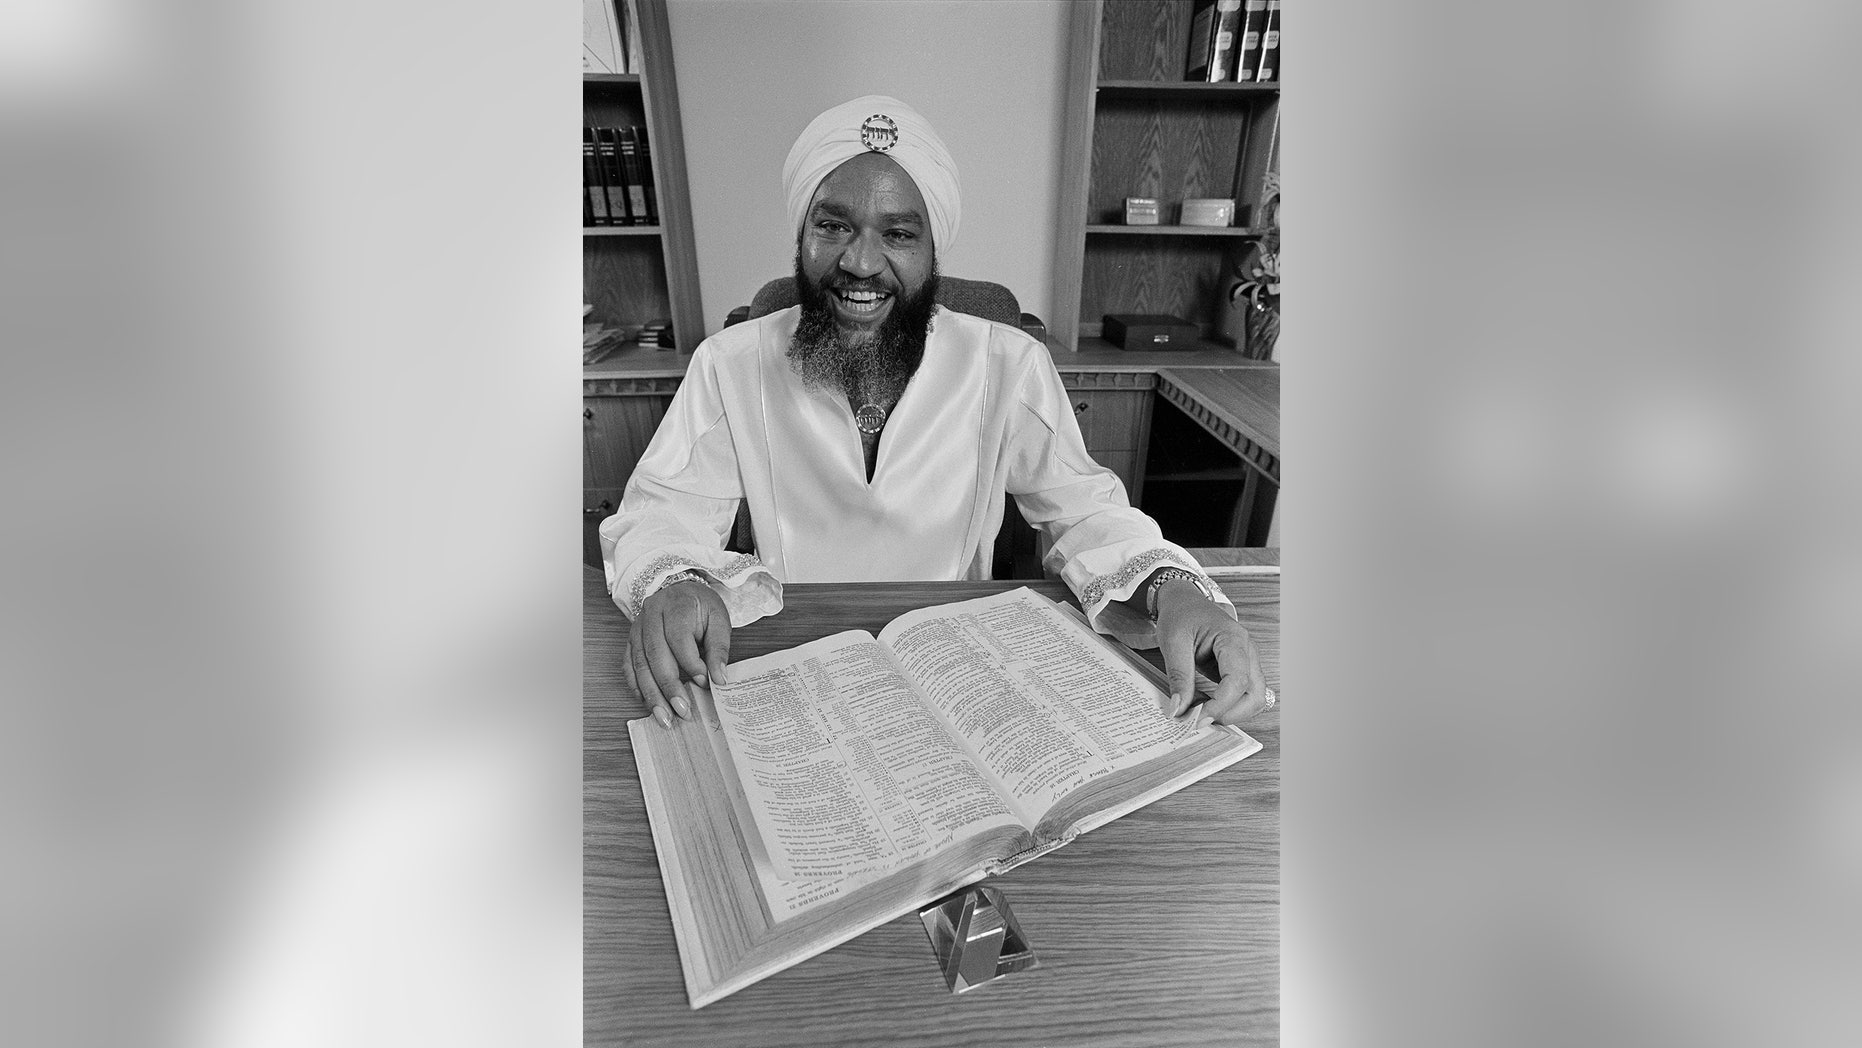 Yahweh ben Yahweh, the controversial leader of the Nation of Yahweh, is the subject of a new documentary on Oxygen.